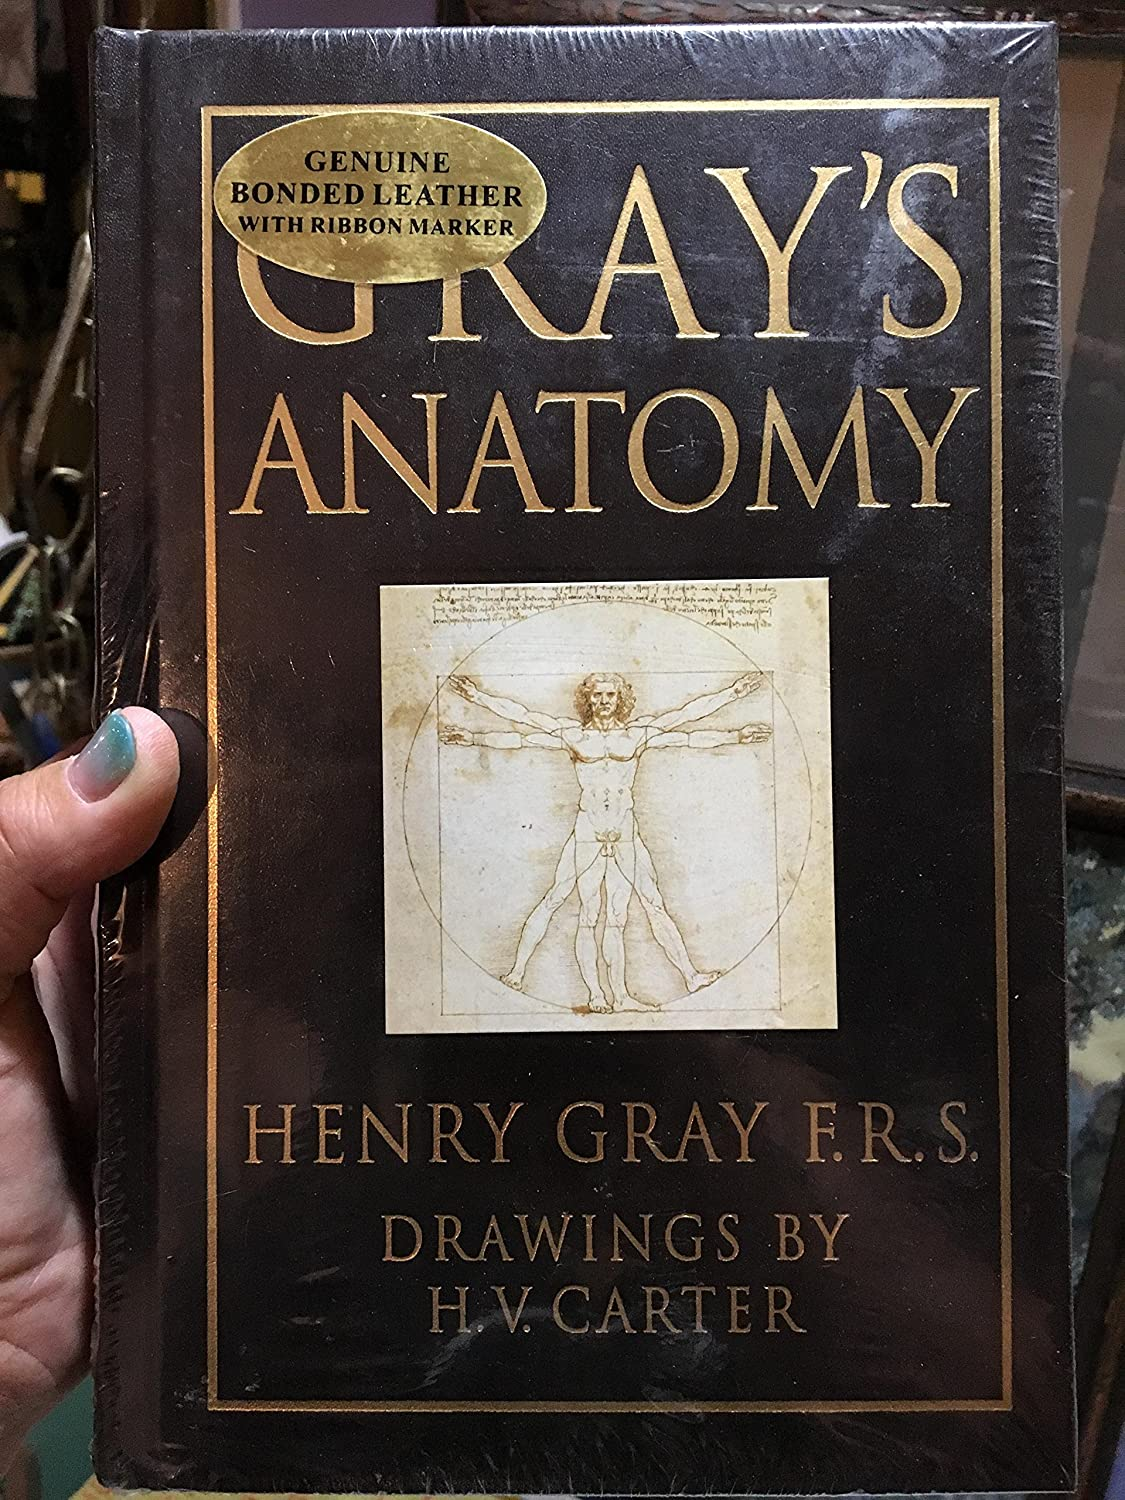 Amazon.com: Gray\'s Anatomy by Henry Gray (Leather Bound): F.R.S. ...